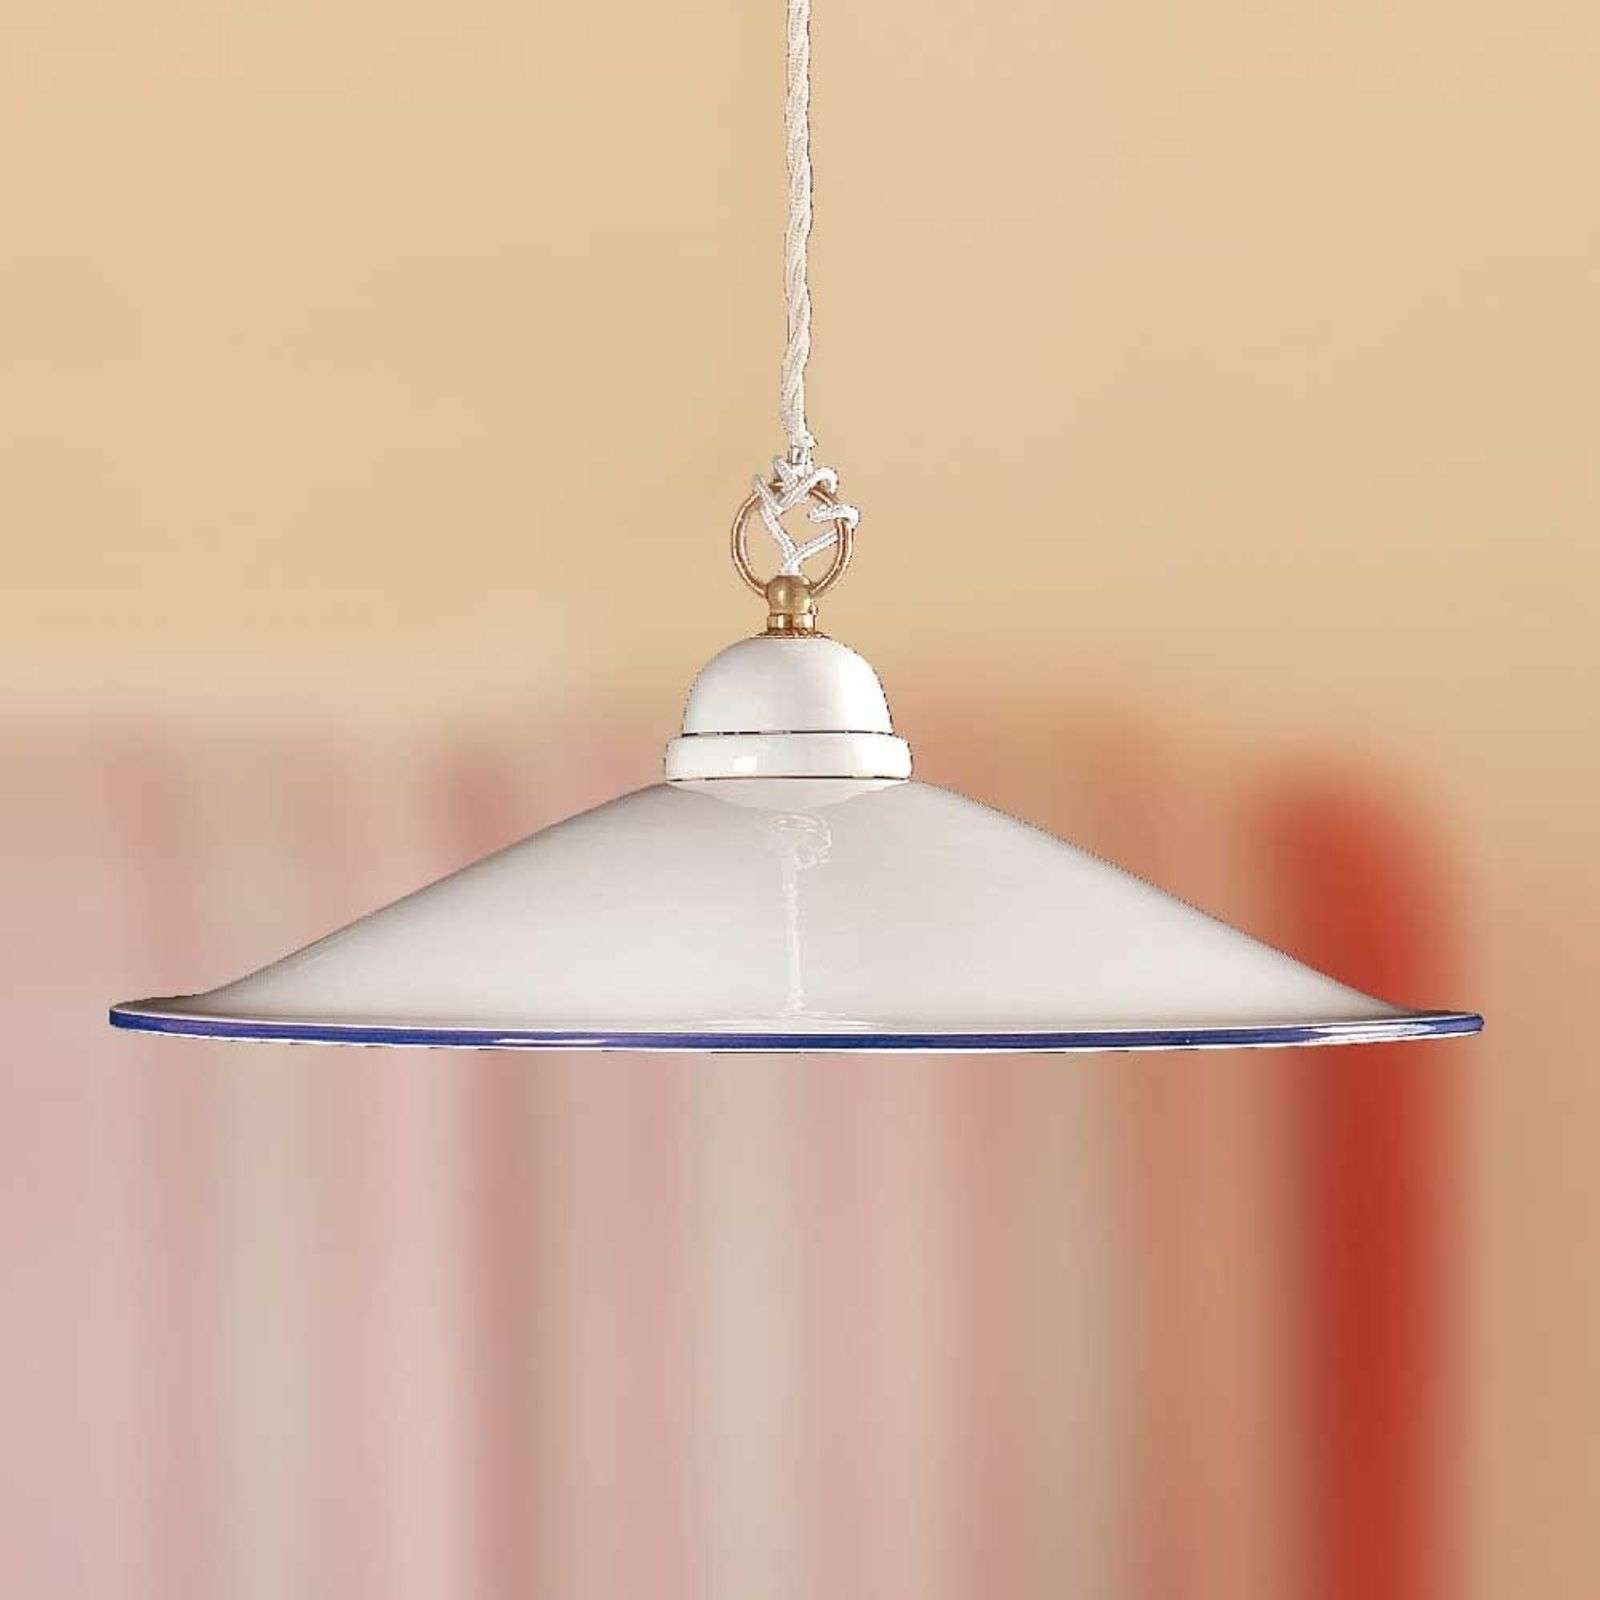 Belle suspension PIATTO en céramique 43 cm